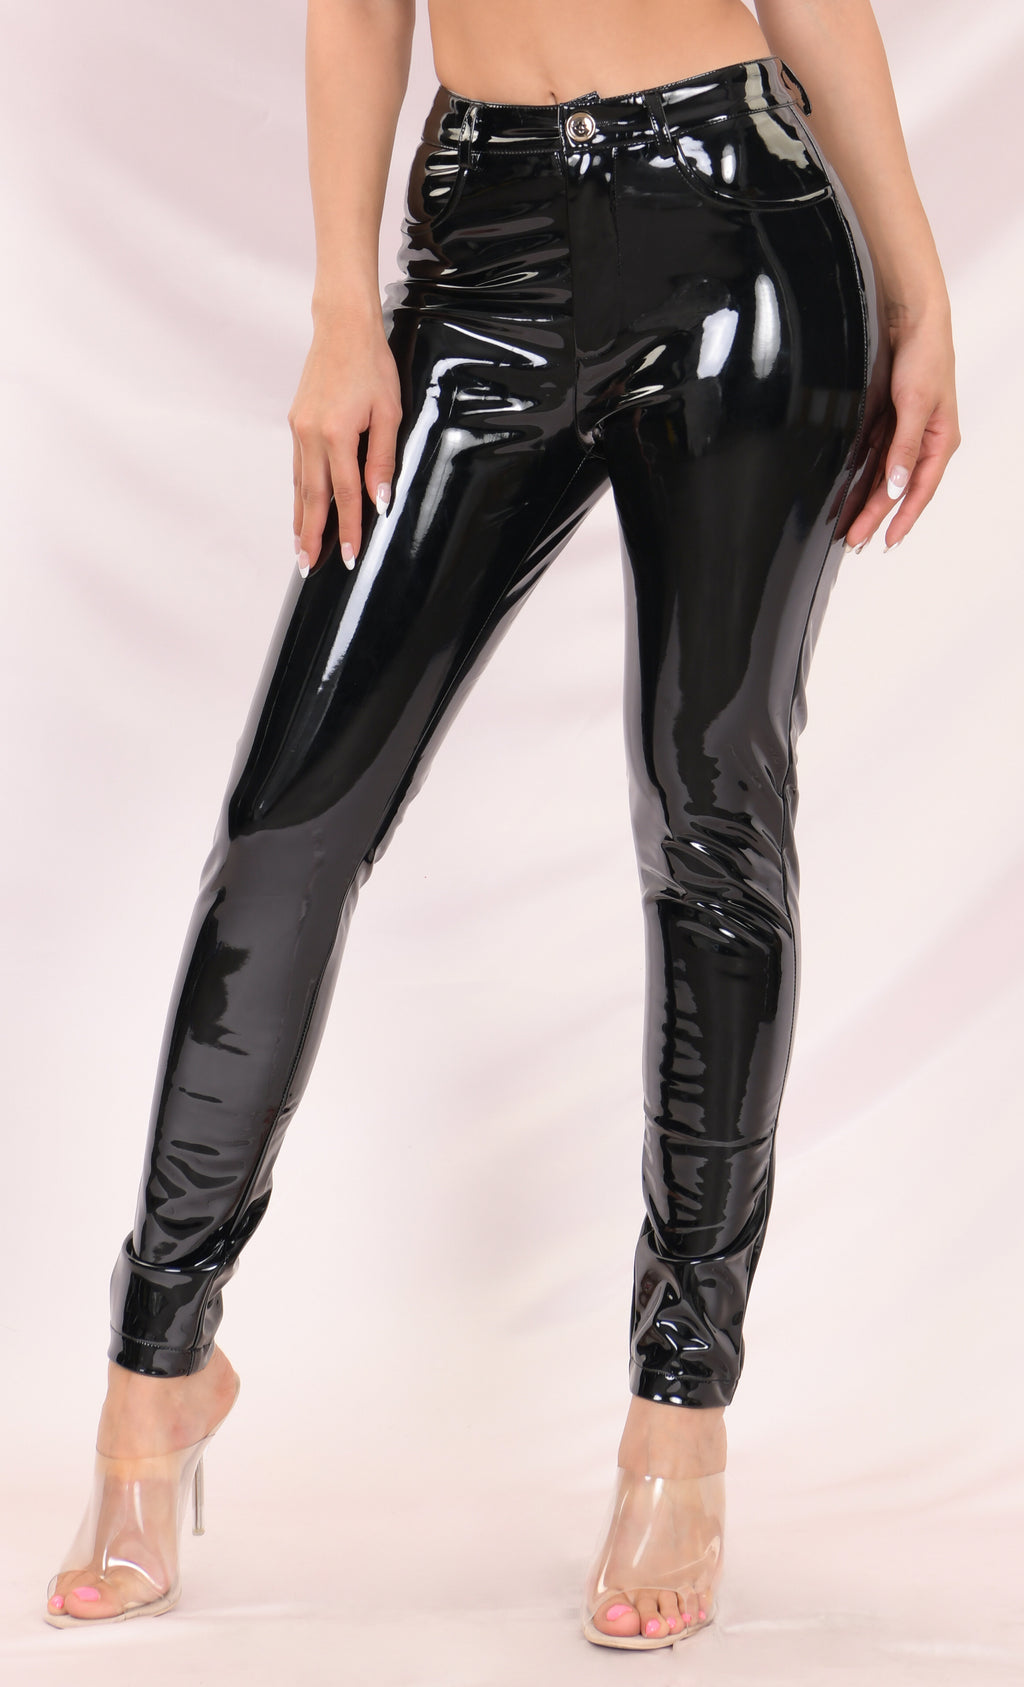 Too Slick Black PU Patent Mid Rise Shiny Zip Front Faux Leather Skinny Button Pant Streetwear